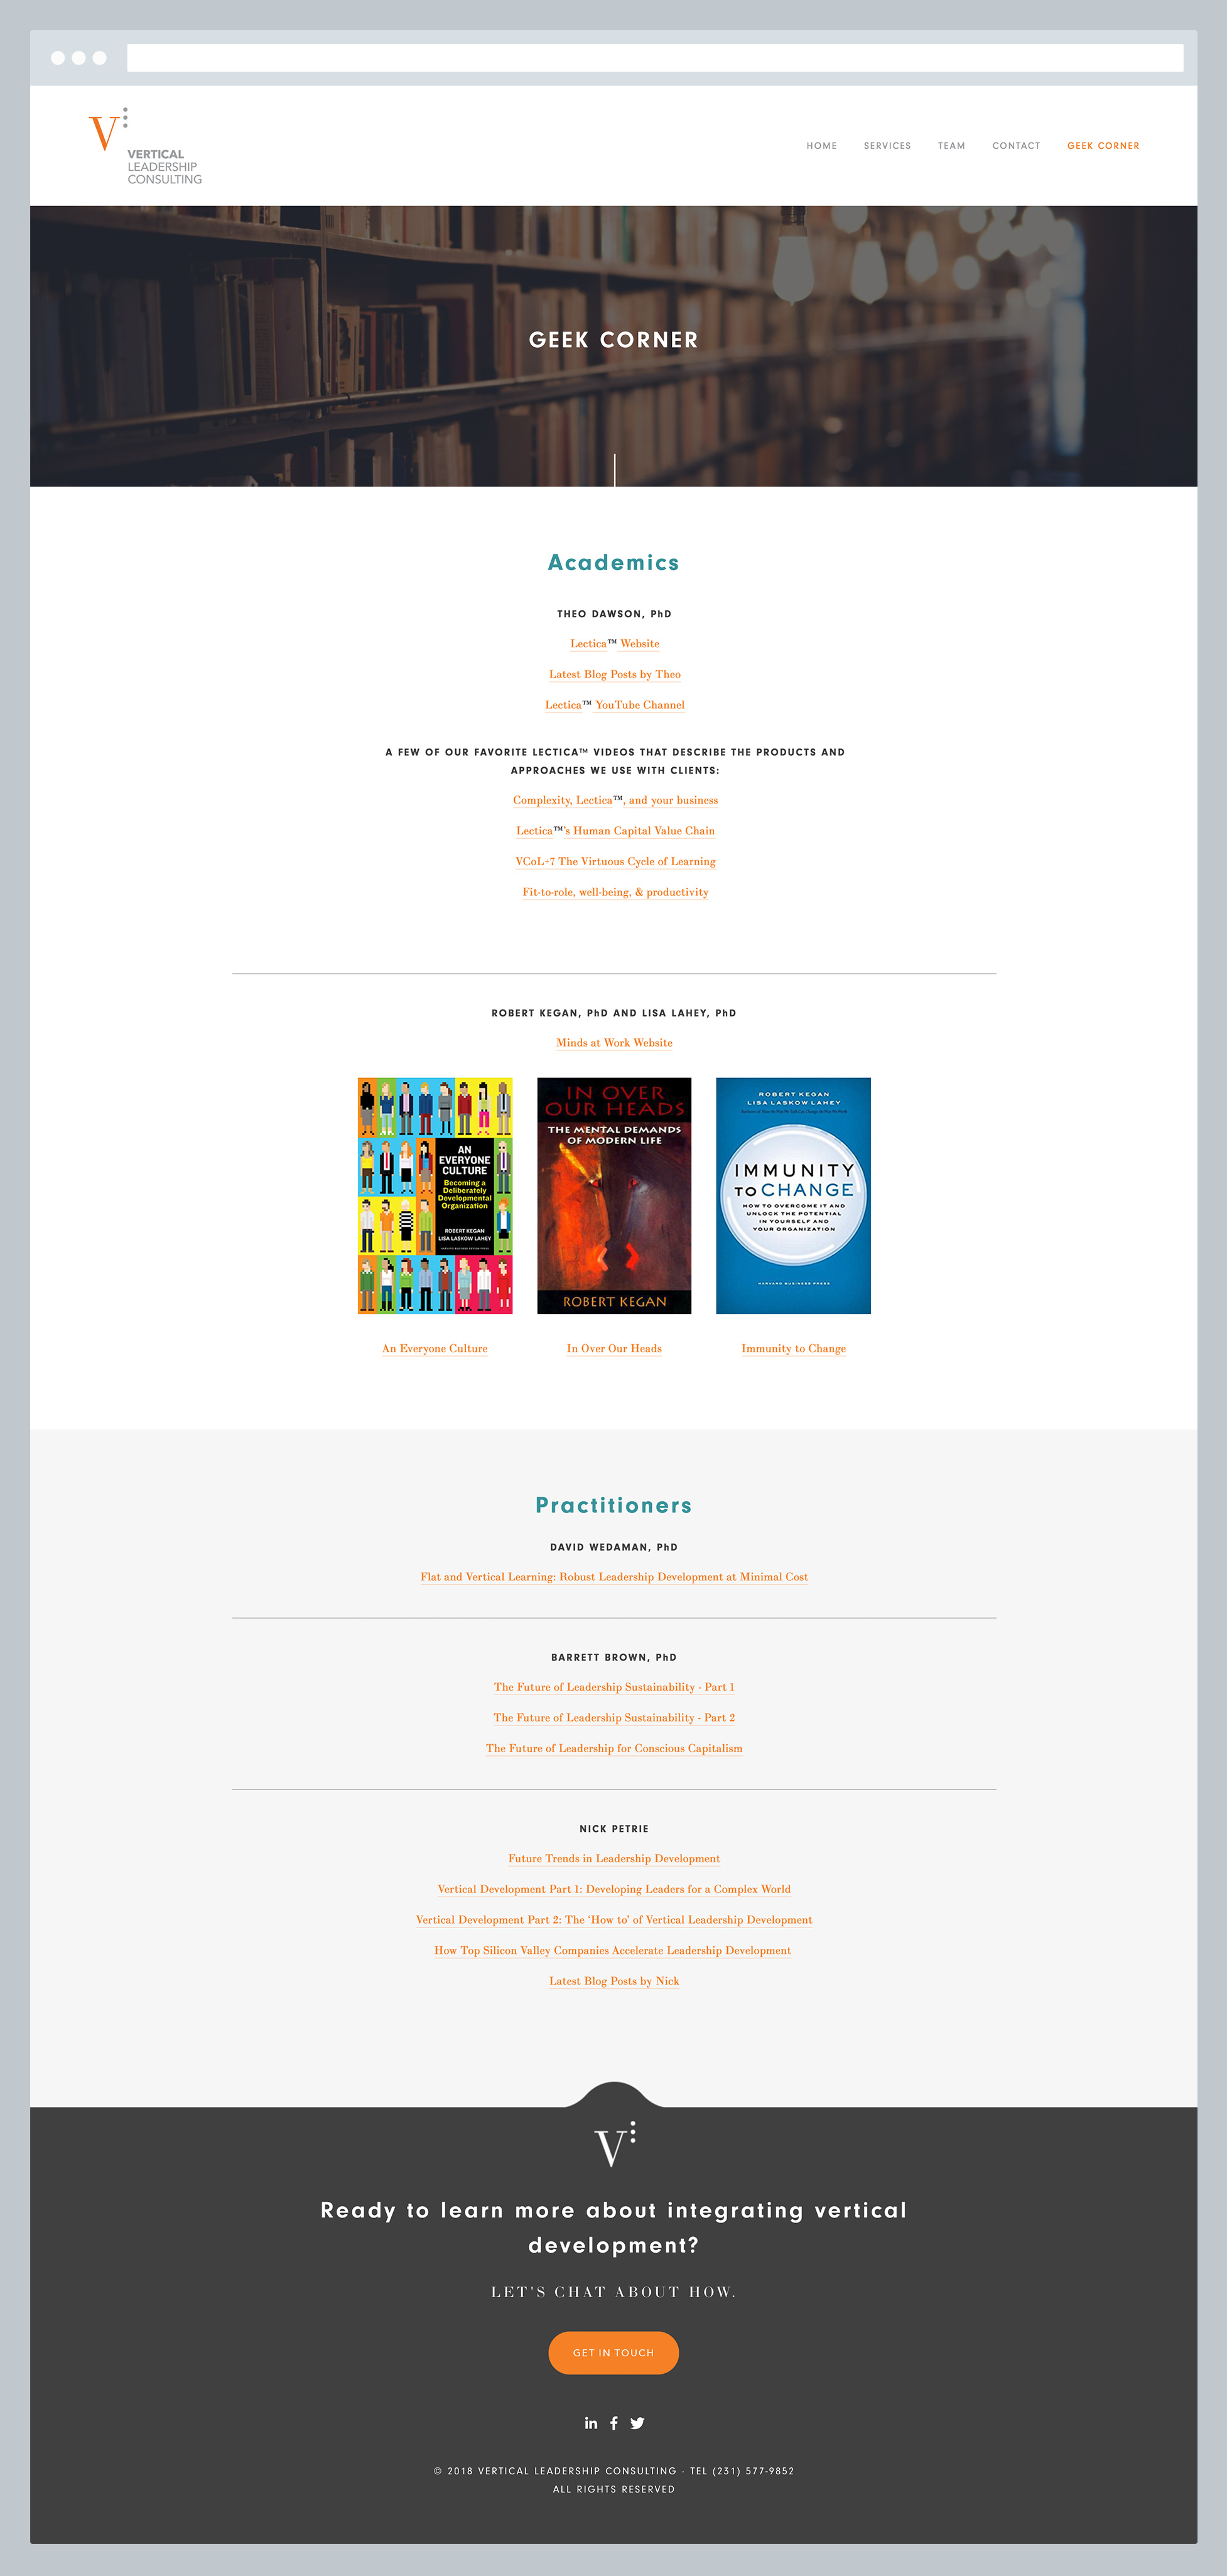 Vertical Leadership Consulting - Geek Corner Page, by Janessa Rae Design Creative in collaboration with Sweaty Wisdom